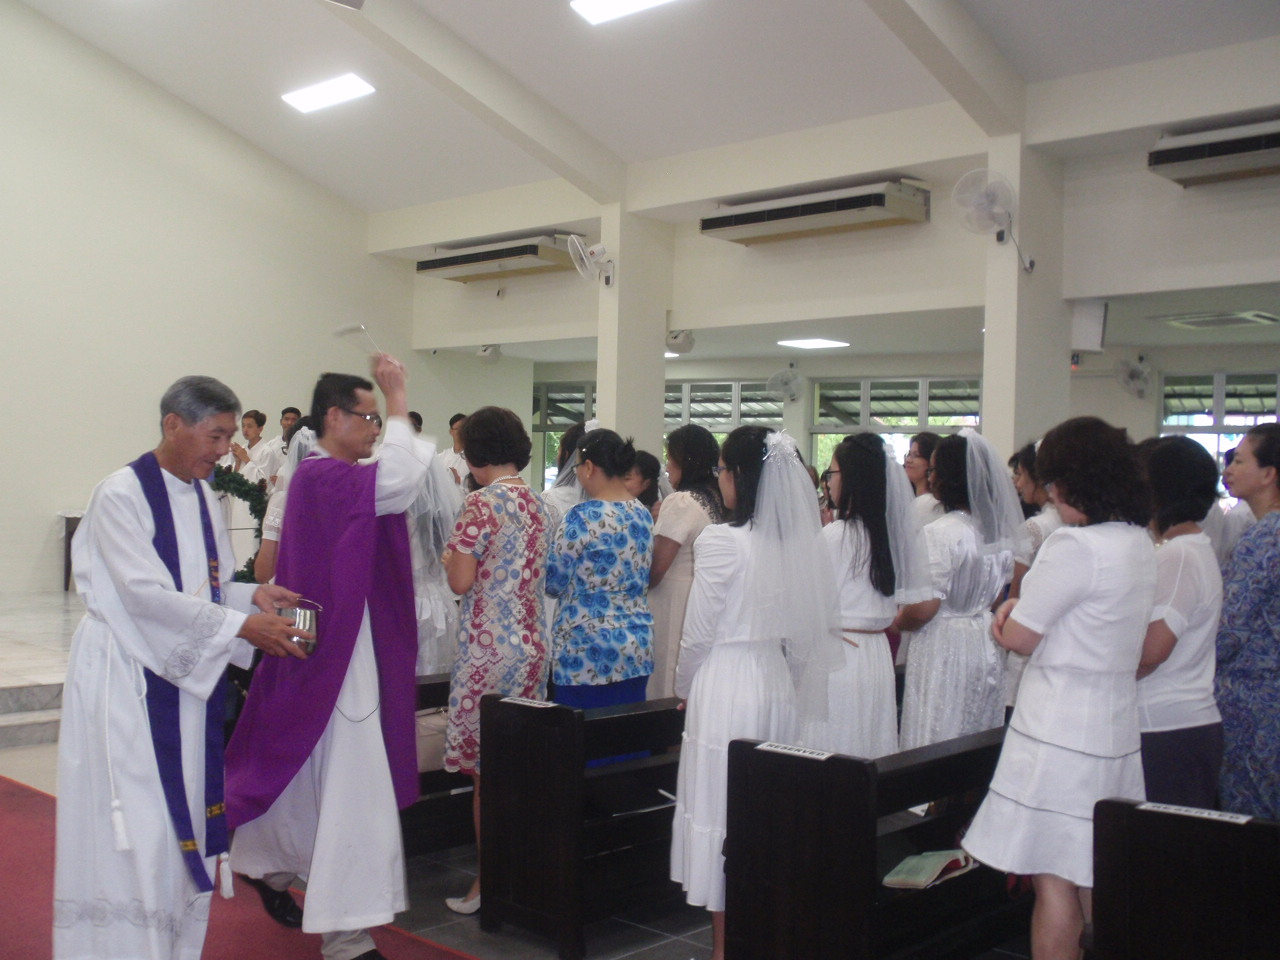 Abp Wong sprinkles the people with holy water during the rite of blessing.